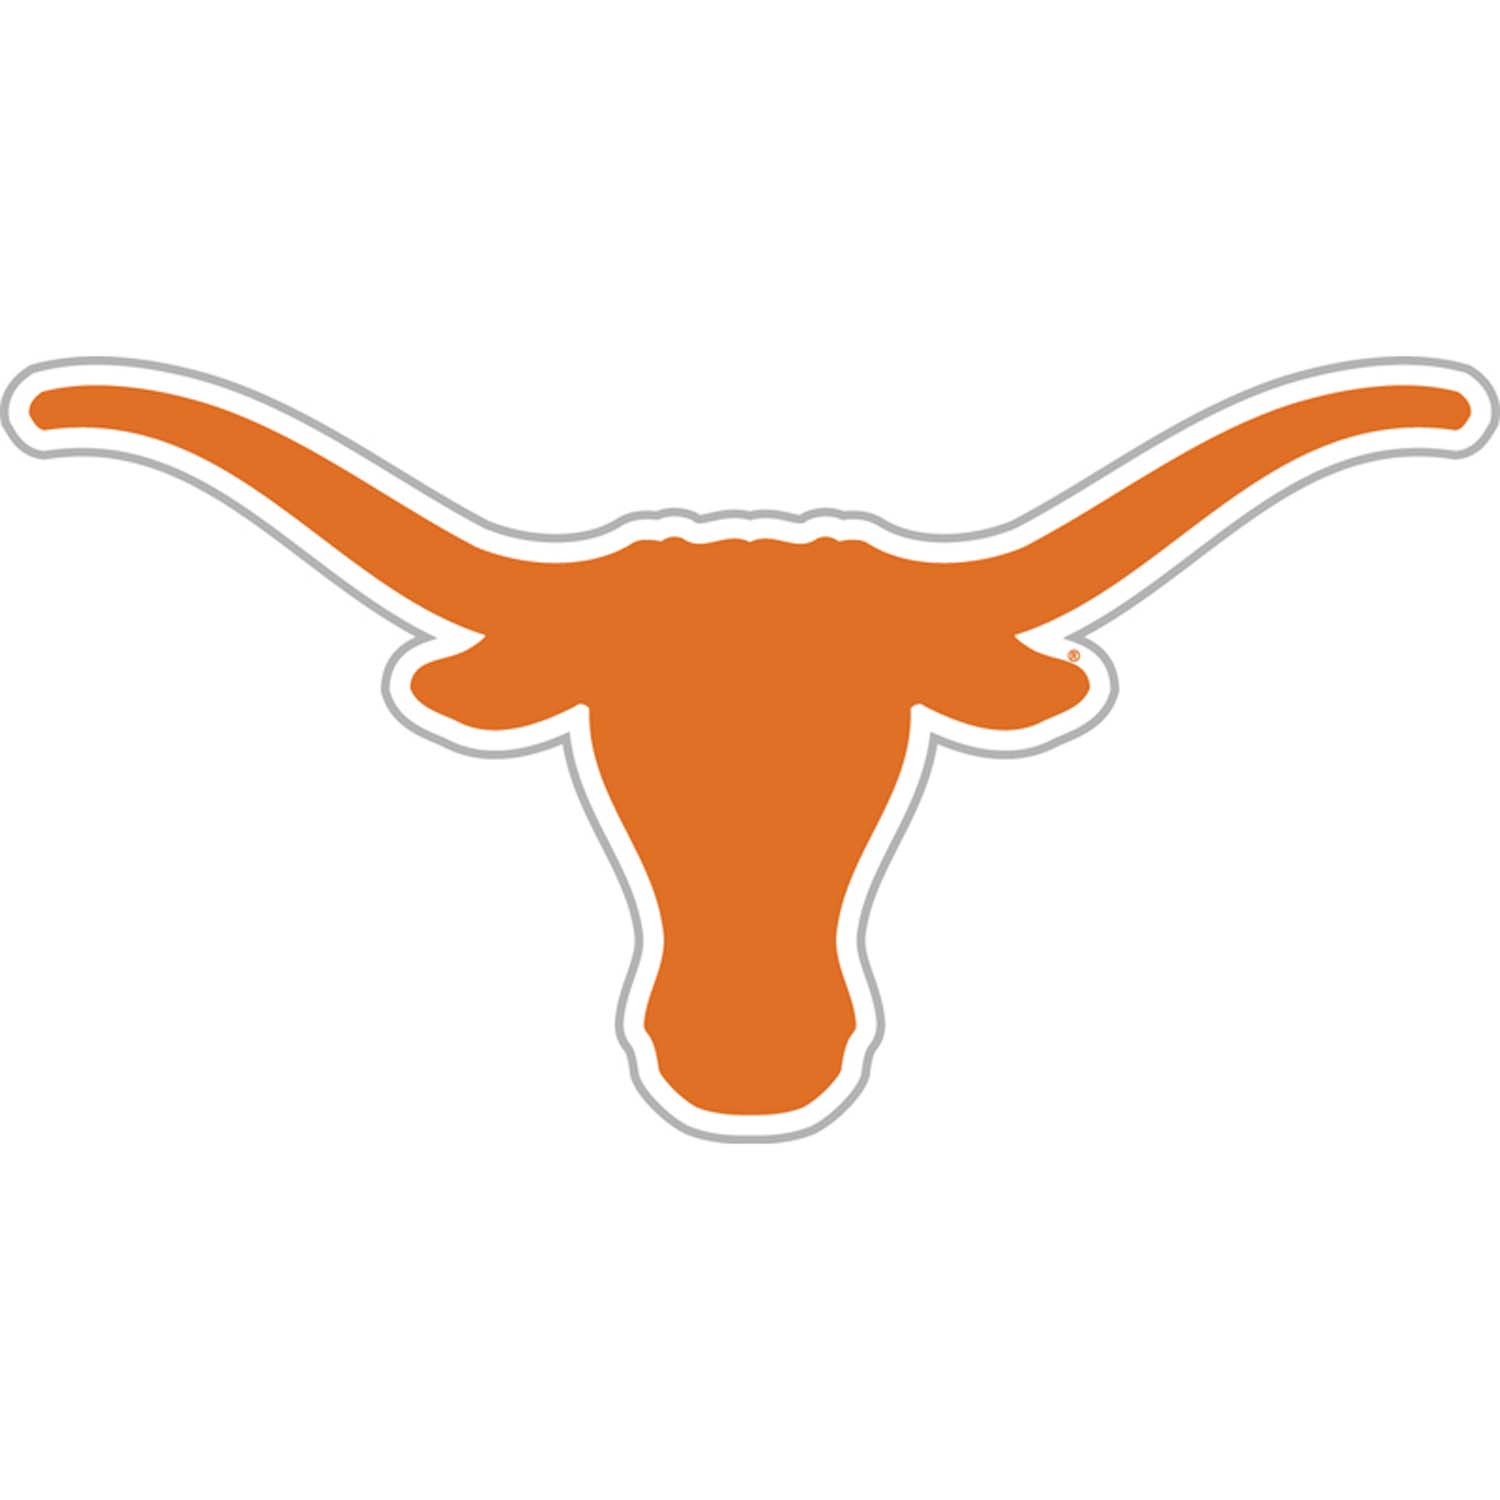 Image result for Texas logo